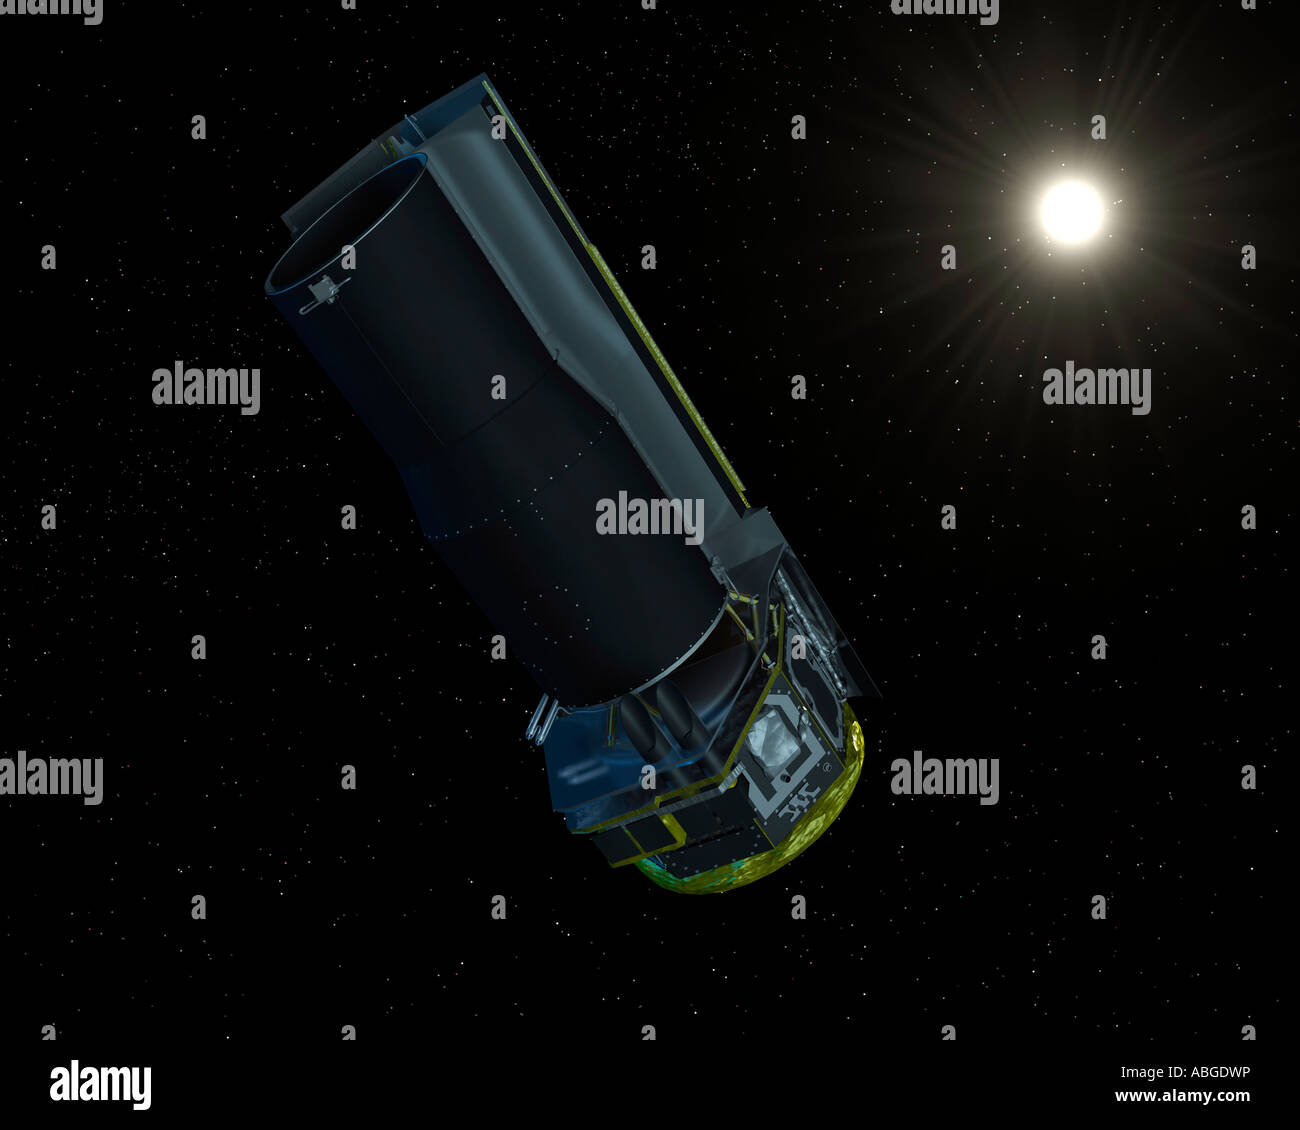 Spitzer seen in visible light. The solar shield always faces the sun, allowing the spacecraft to remain very cold. - Stock Image